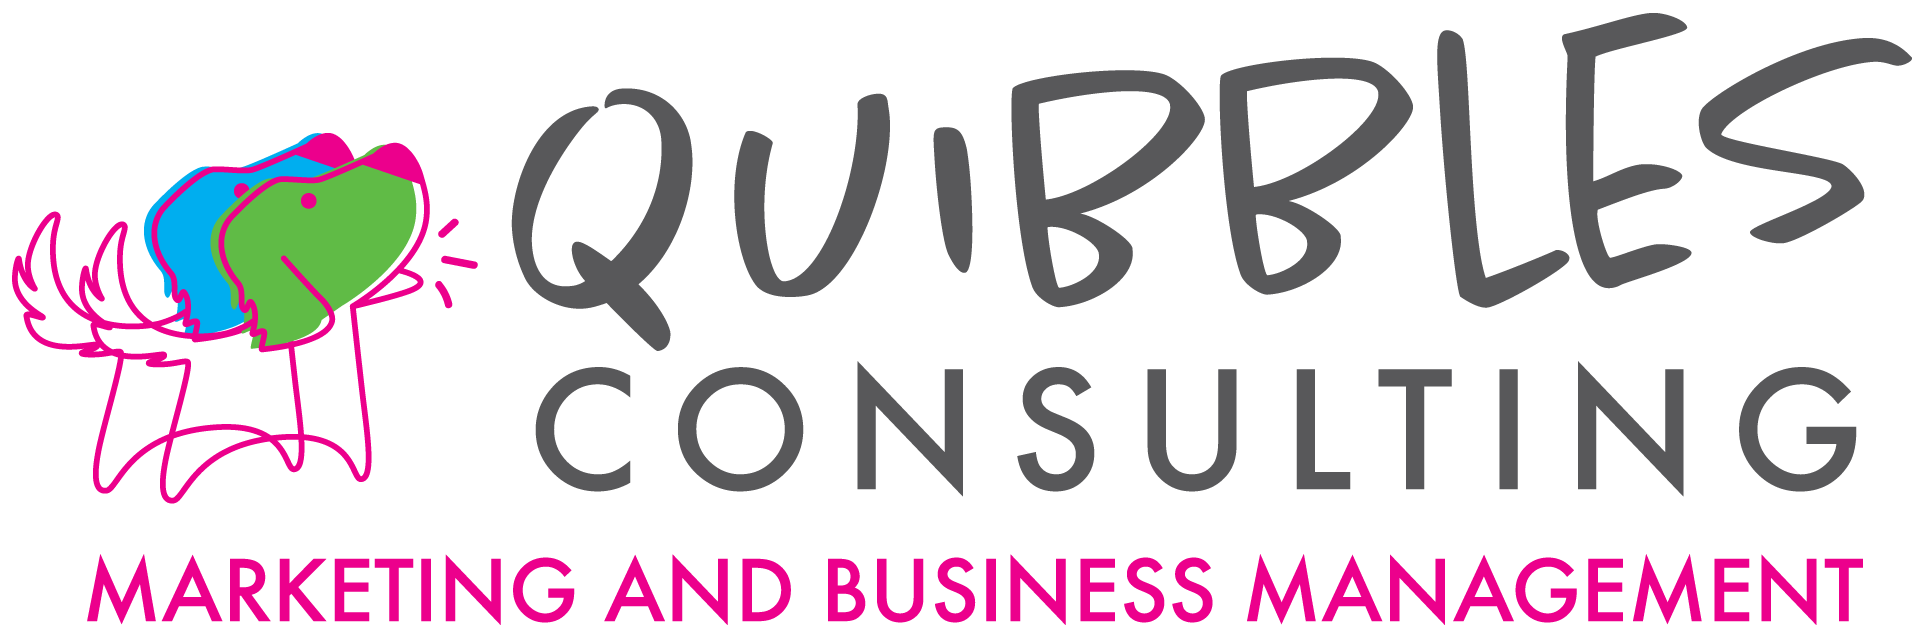 Quibbles Consulting